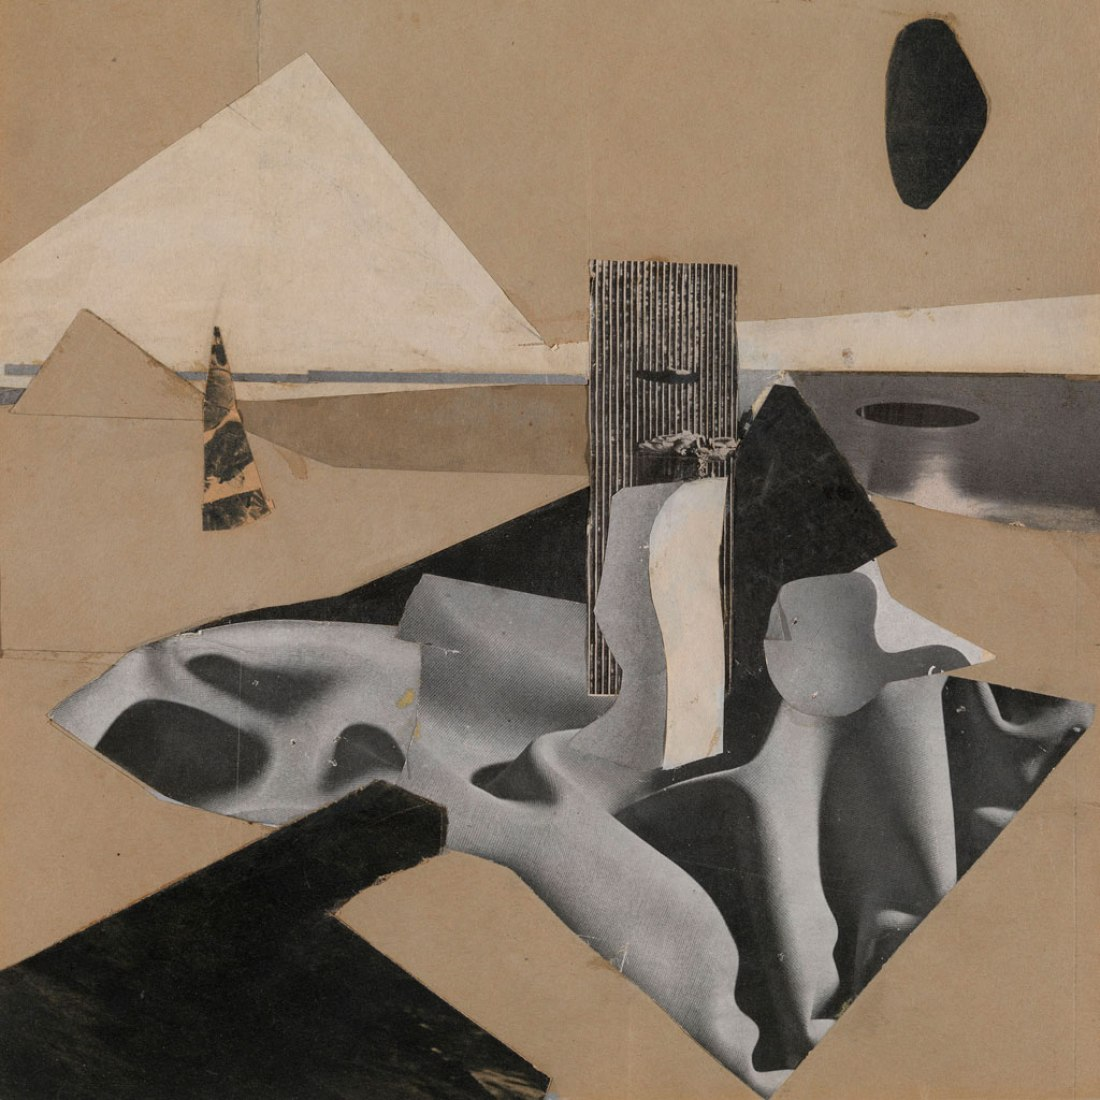 Untitled, c.1930. Collage on paper. Exhibition Eileen Gray: the private painter. Image courtesy of the Osborne Samuel Gallery.